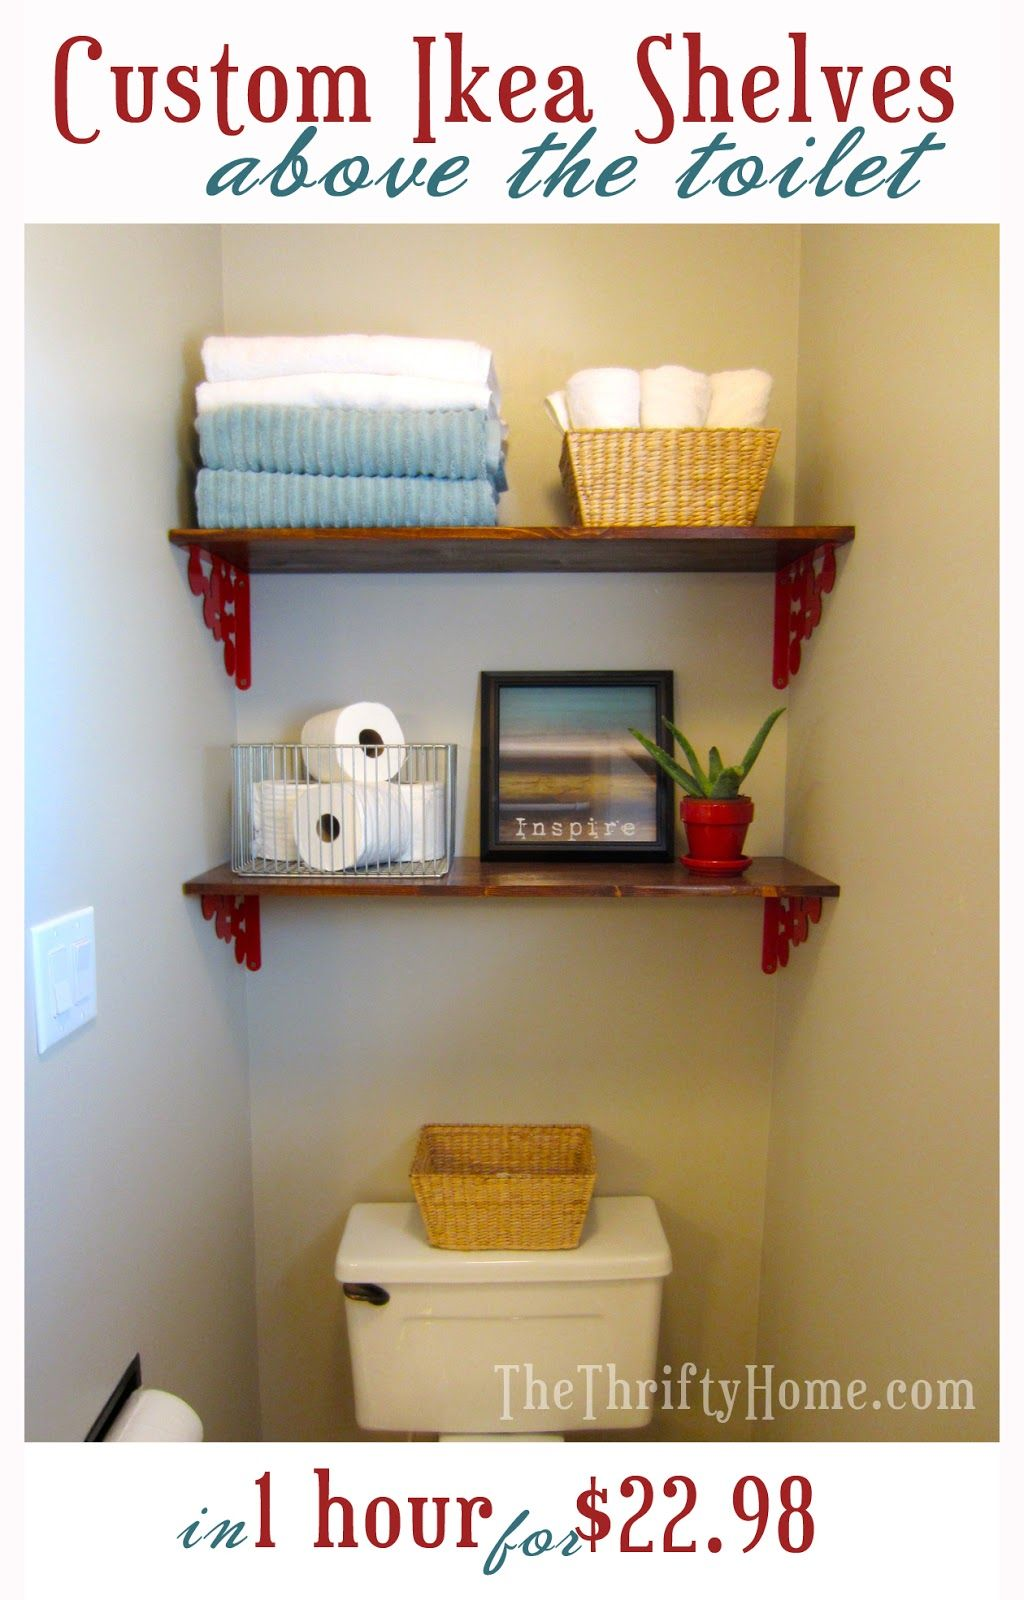 Quick And Easy Shelving Above The Toilet Ikea Shelves From Thethriftyhome